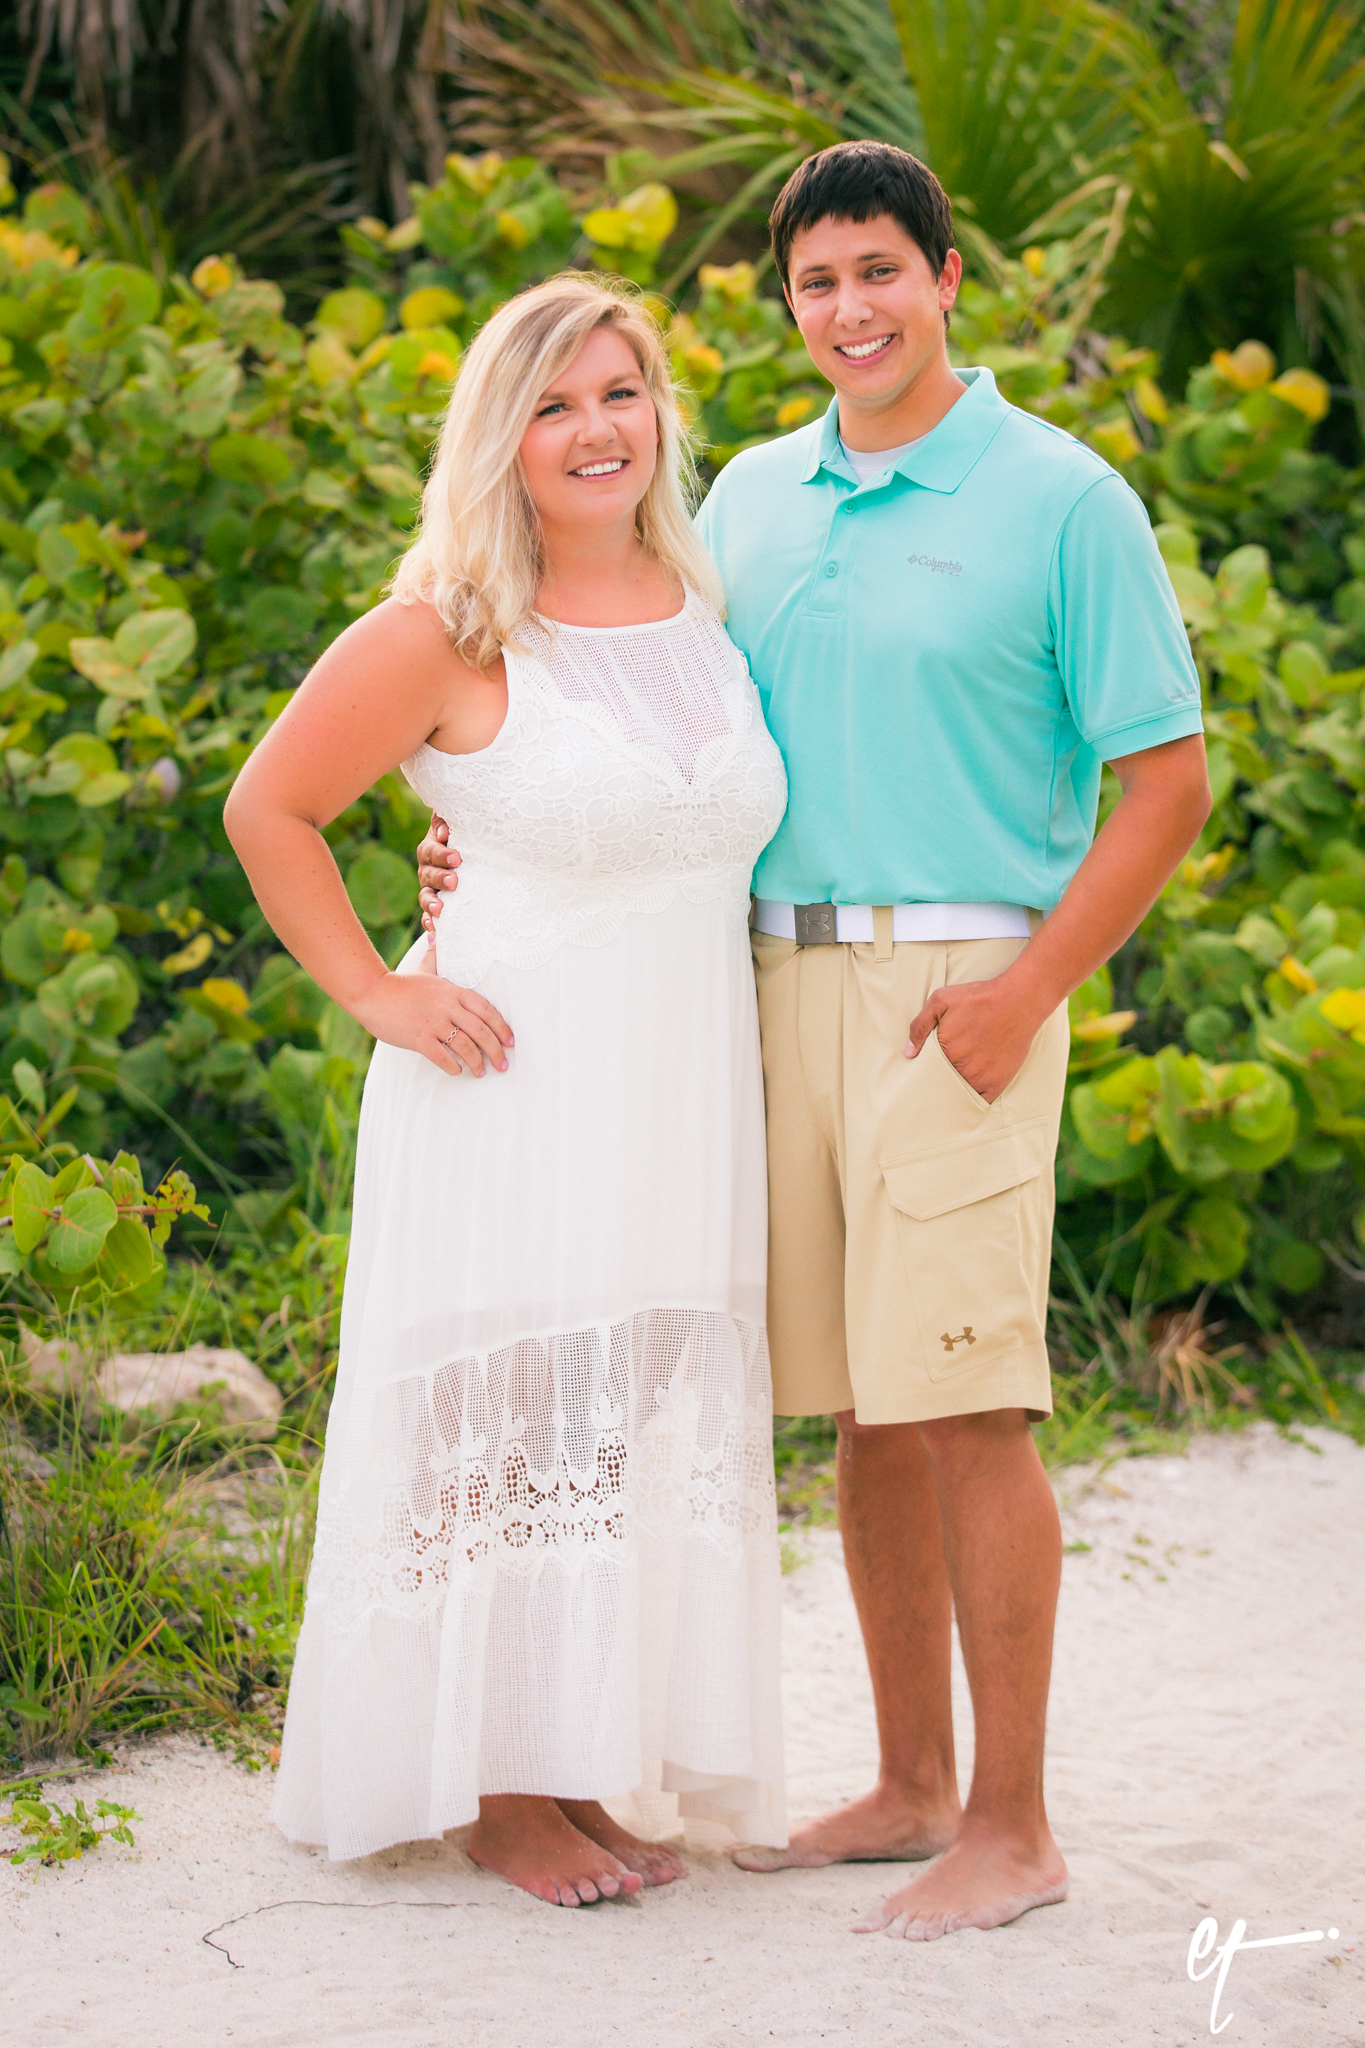 Surprise_Proposal_Sarasota_Lido_Key_Photography_Florida-20.jpg